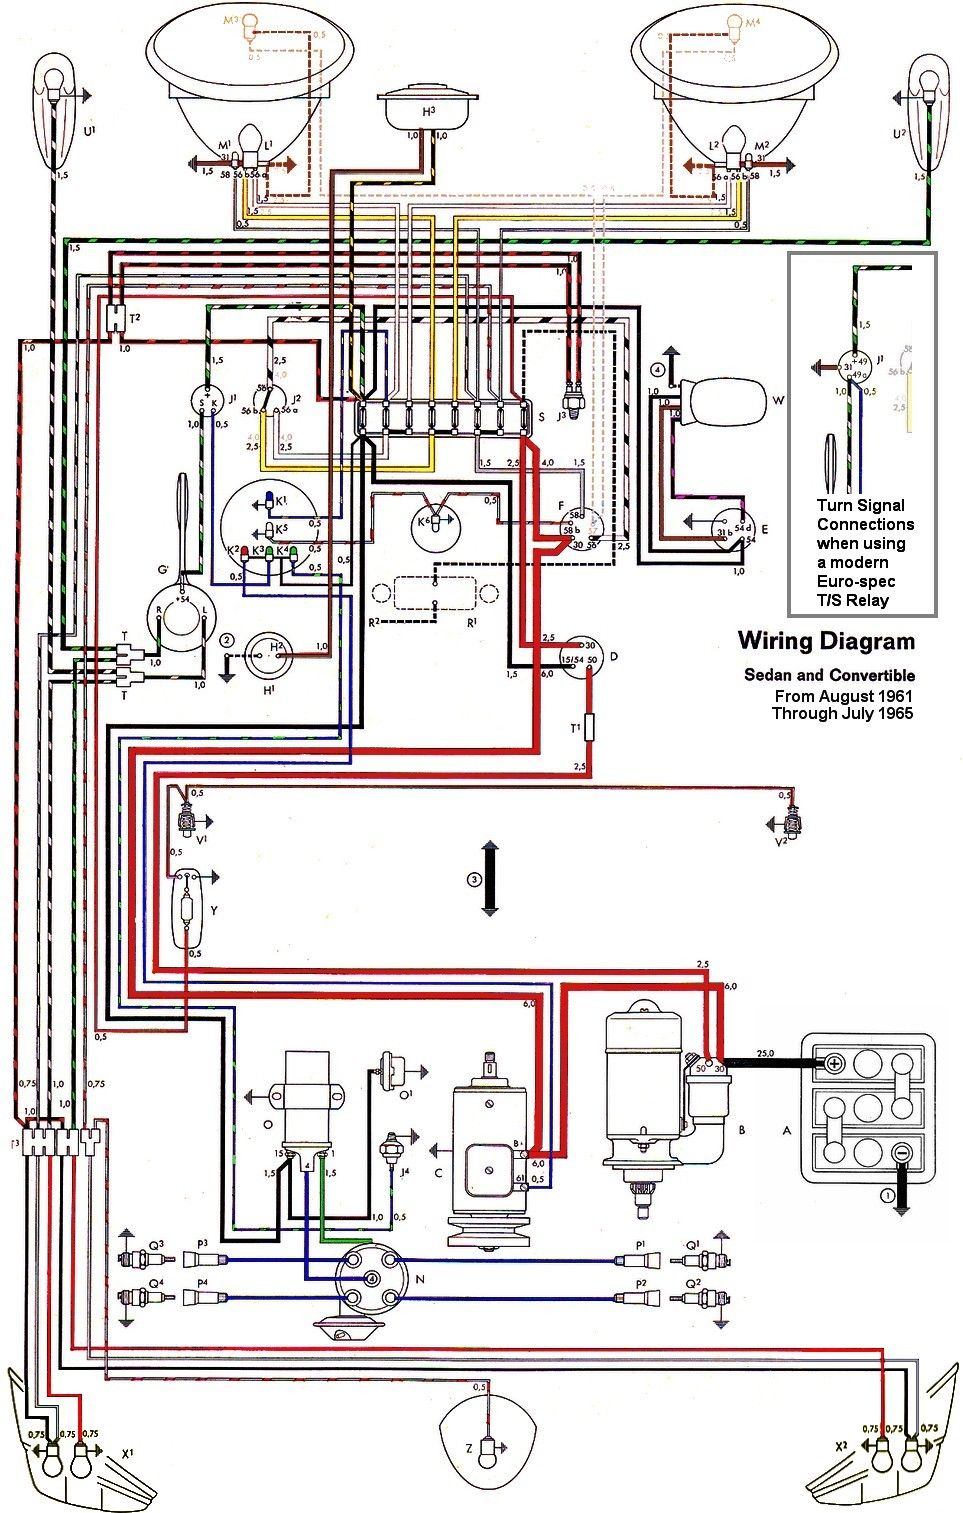 vw bug wiring wiring diagram electricity basics 101 u2022 rh agarwalexports co 1972 vw beetle wiring schematic 1973 vw beetle wiring schematic